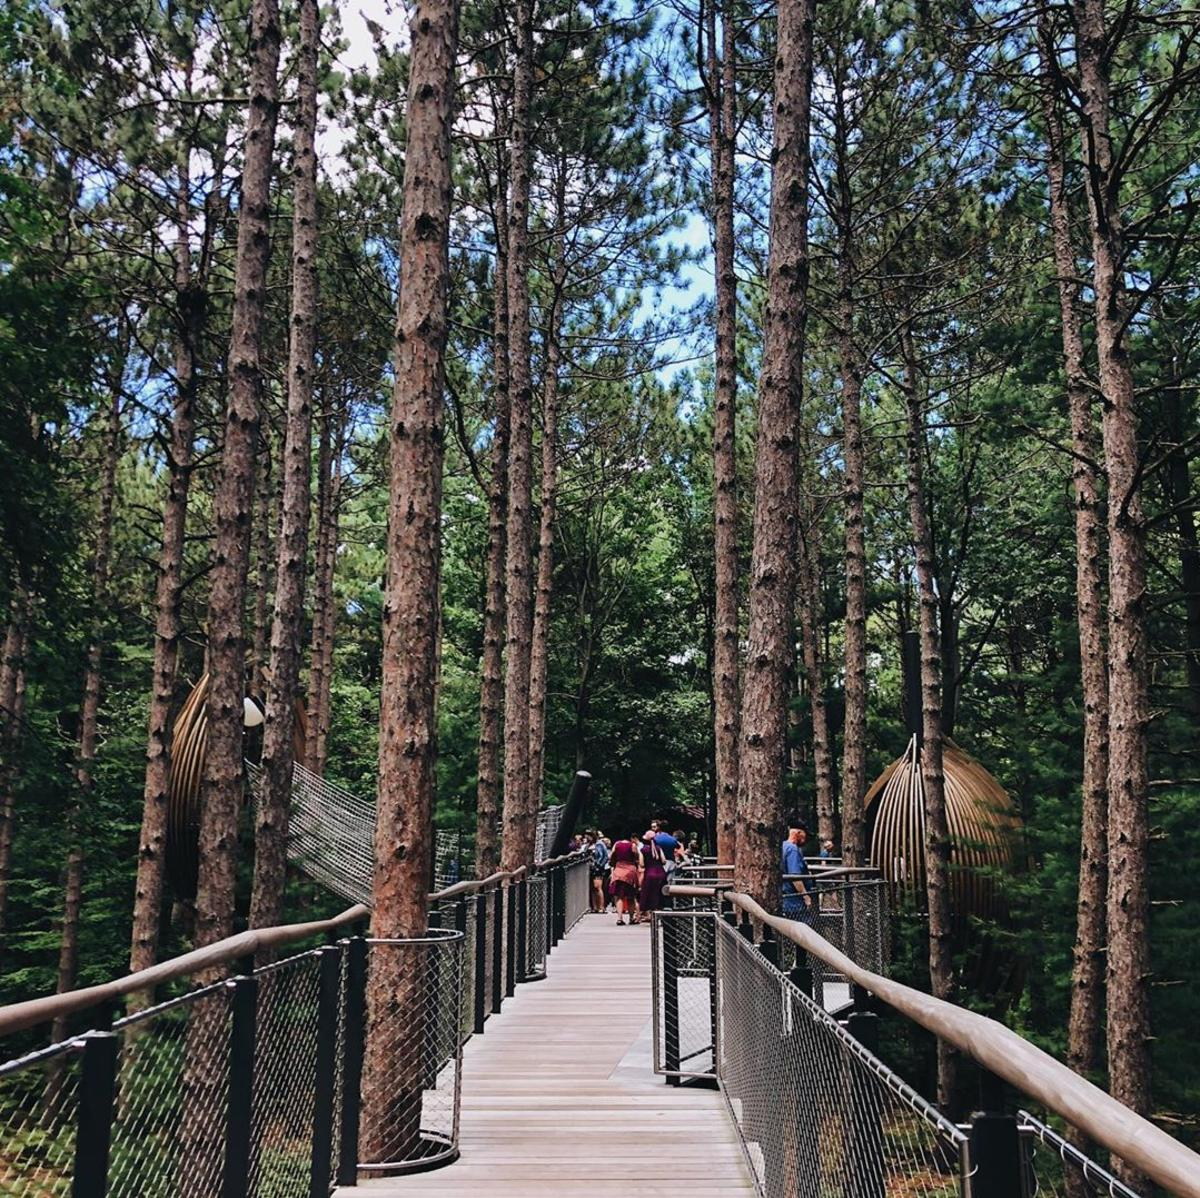 People walking through a forest of towering pines at Whiting Forest of Dow Gardens Canopy Walk